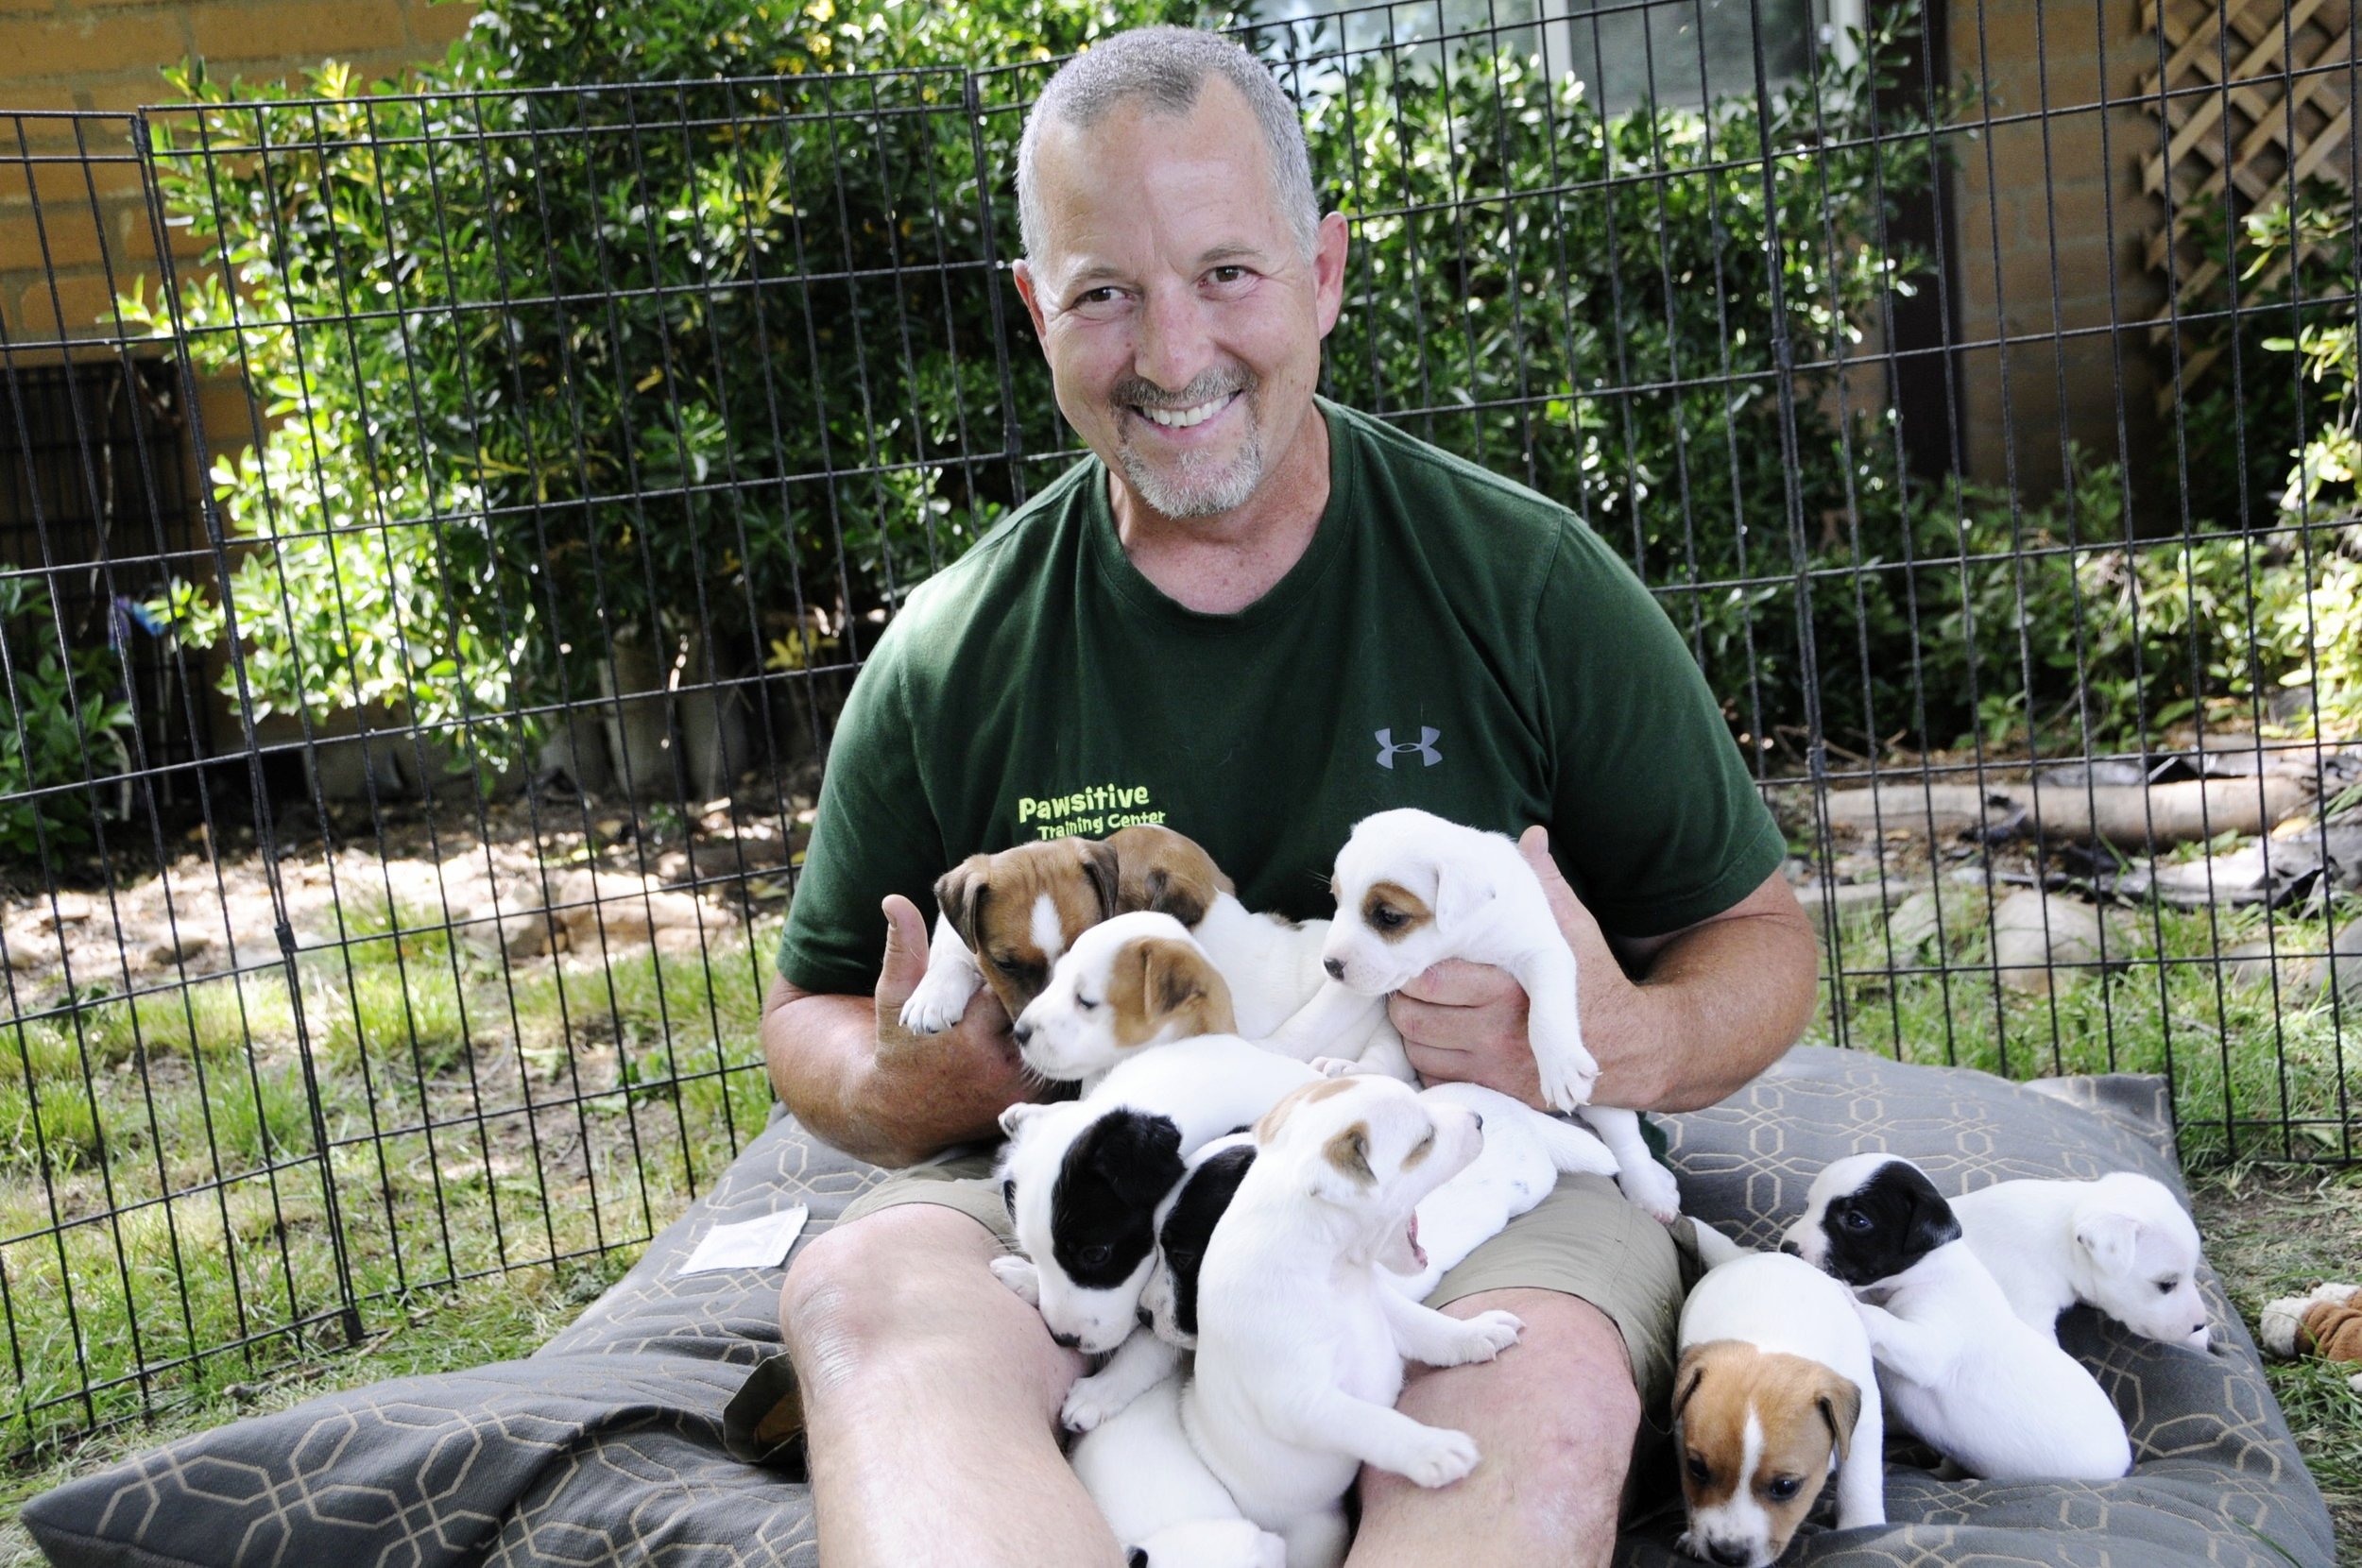 Best Jack Russell Terrier puppy and working dog trainer in Redding, CA, Anderson, Cottonwood, Red Bluff, Palo Cedro, Bella Vista and Shasta Lake City areas.